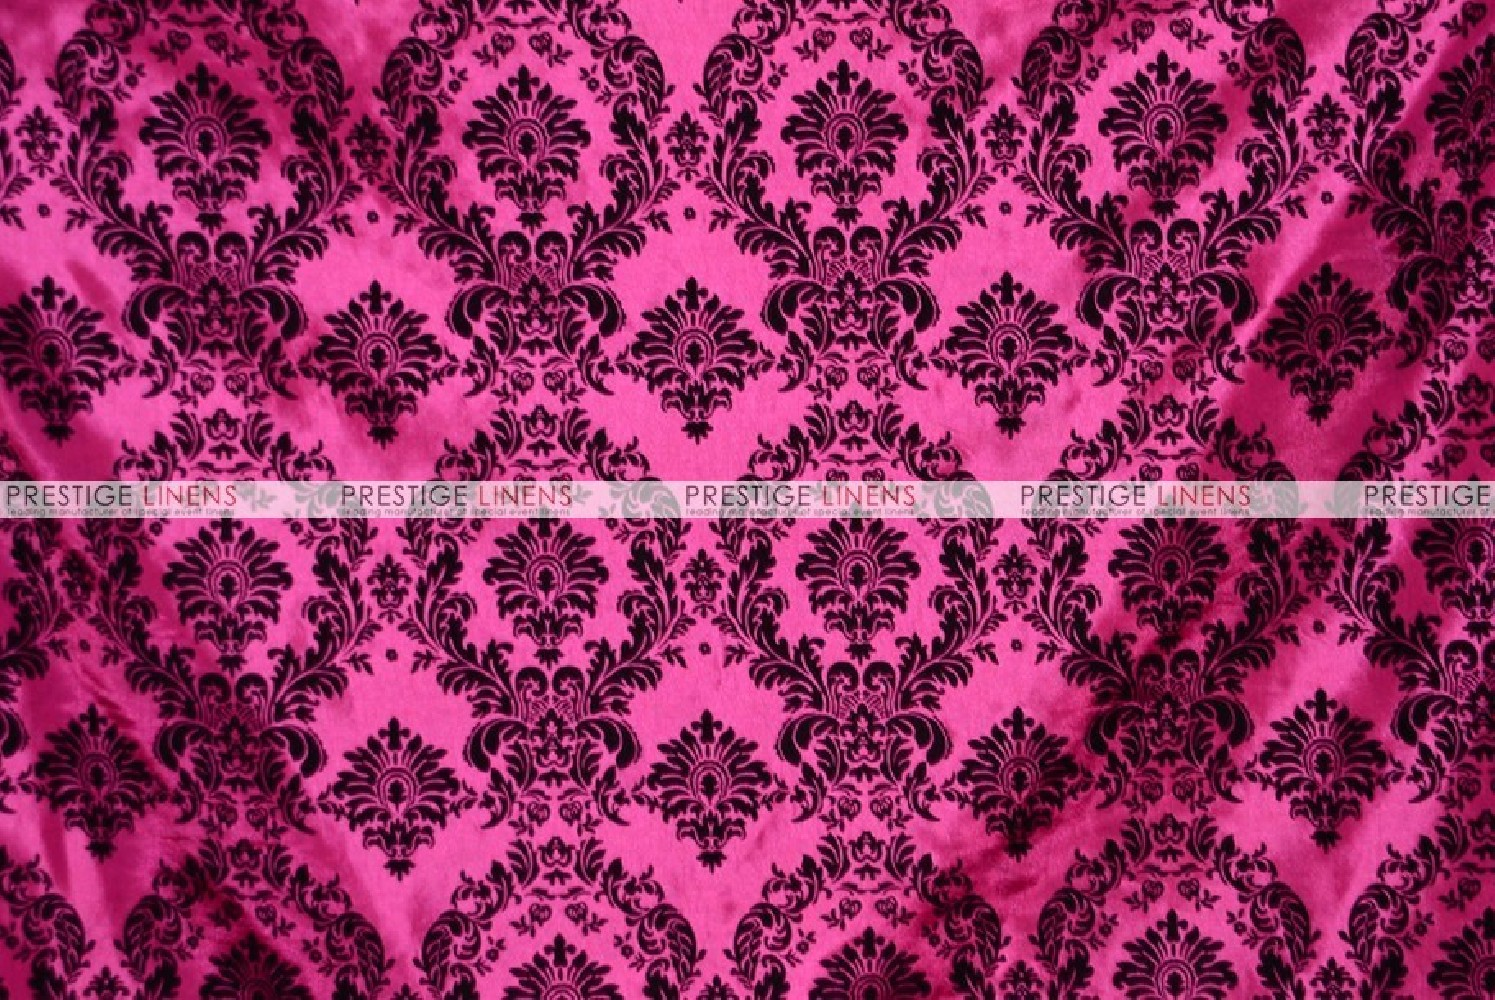 Flocking Damask Taffeta Chair Cover   Hot Pink/Black